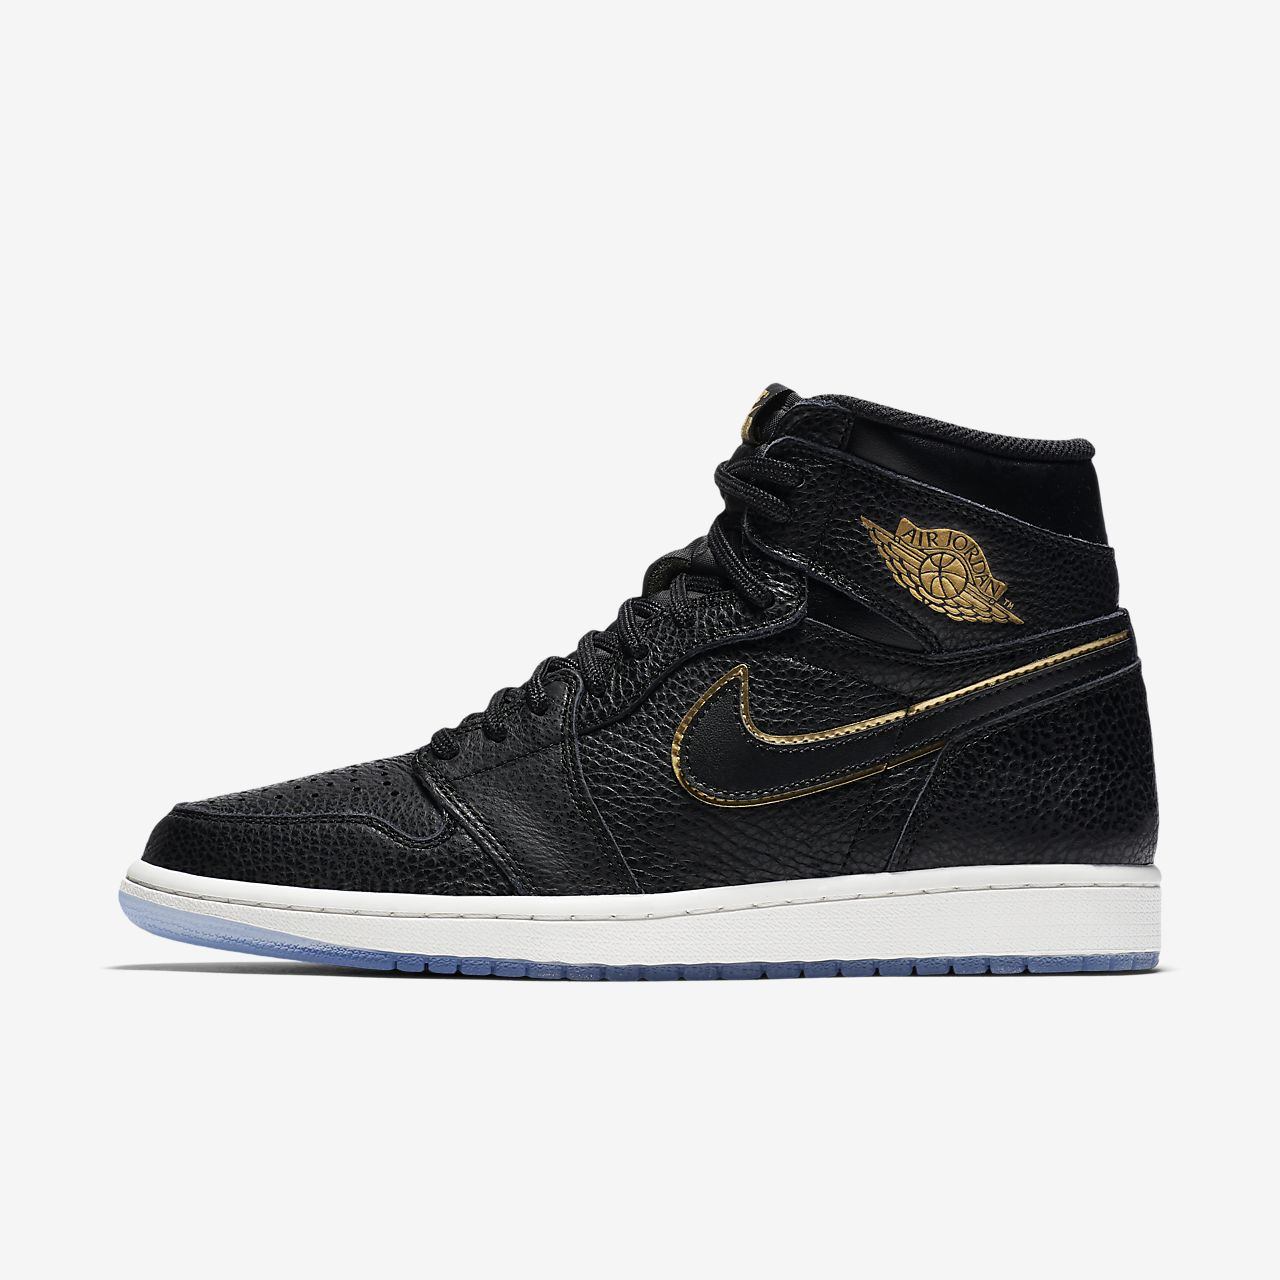 59adef32516 Air Jordan 1 Retro High OG Shoe. Nike.com SG